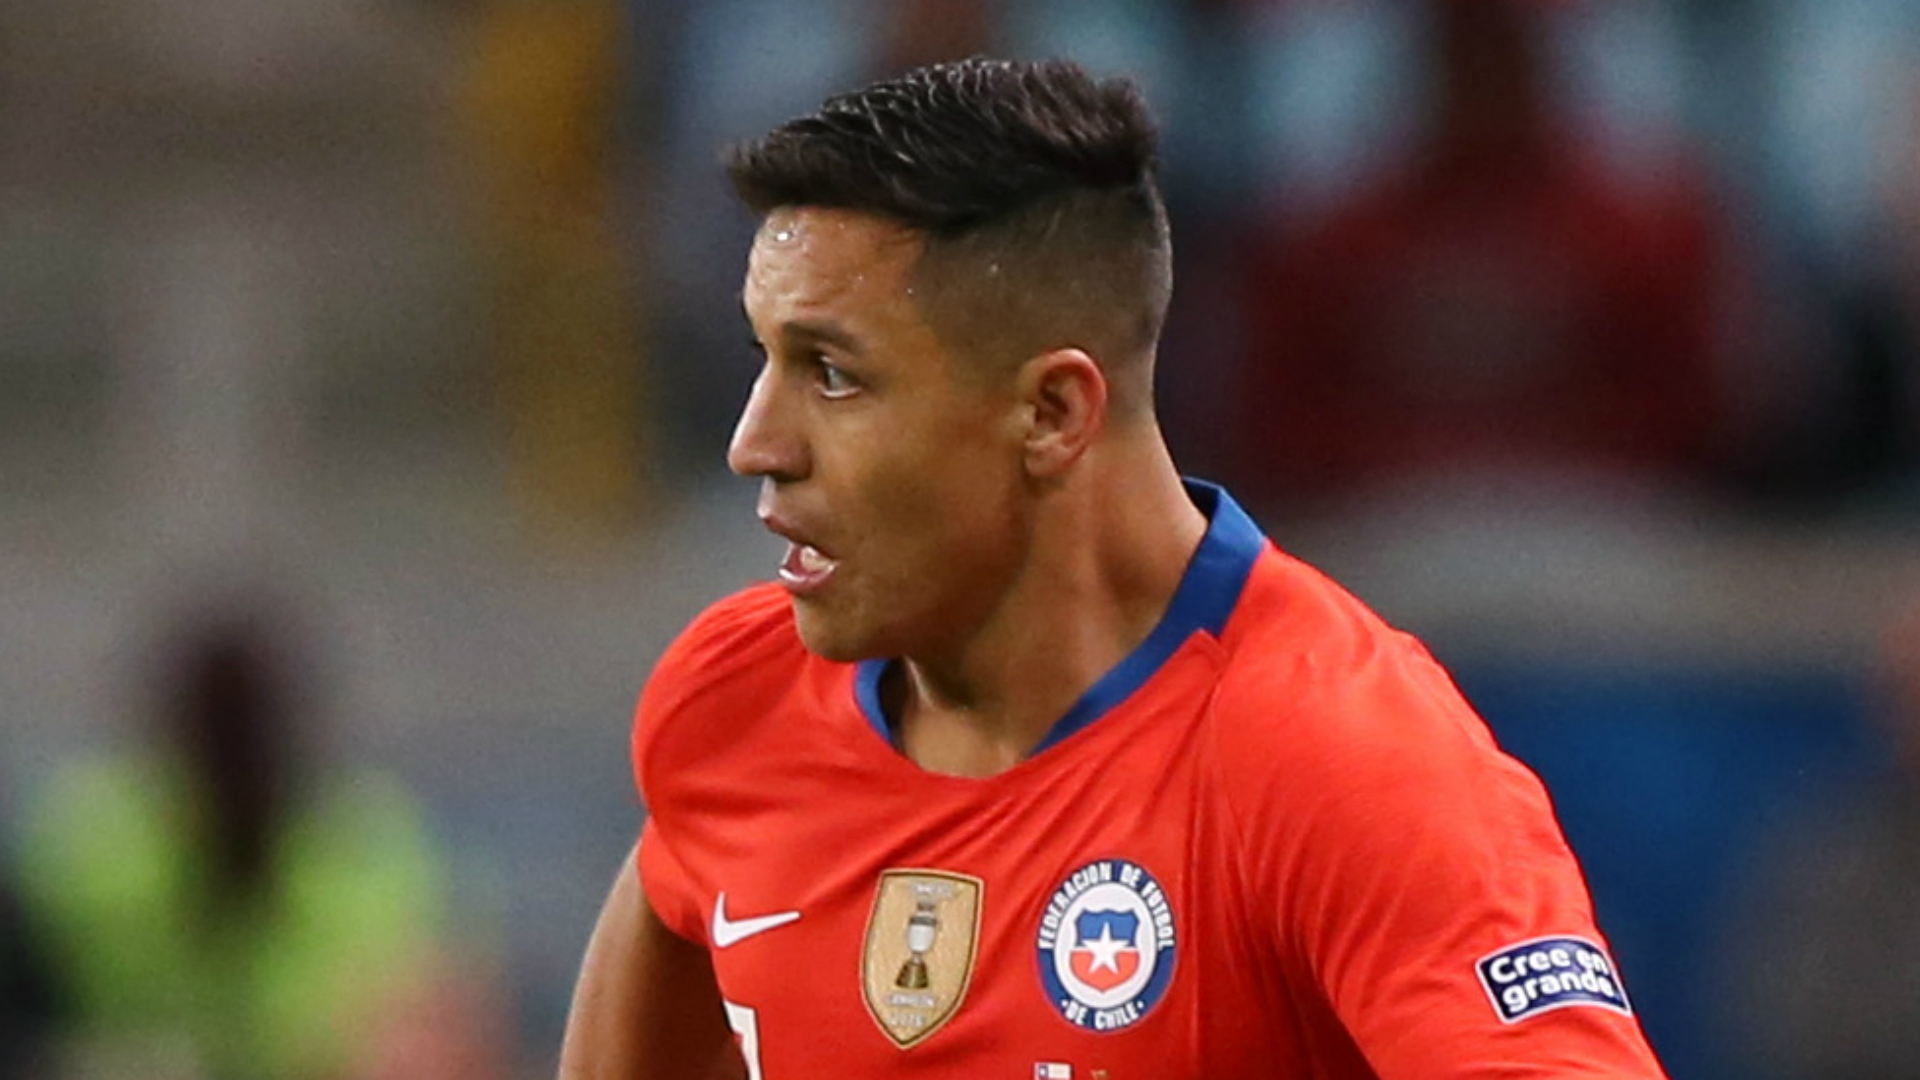 Alexis Sanchez to Undergo Tests to Assess Ankle Injury